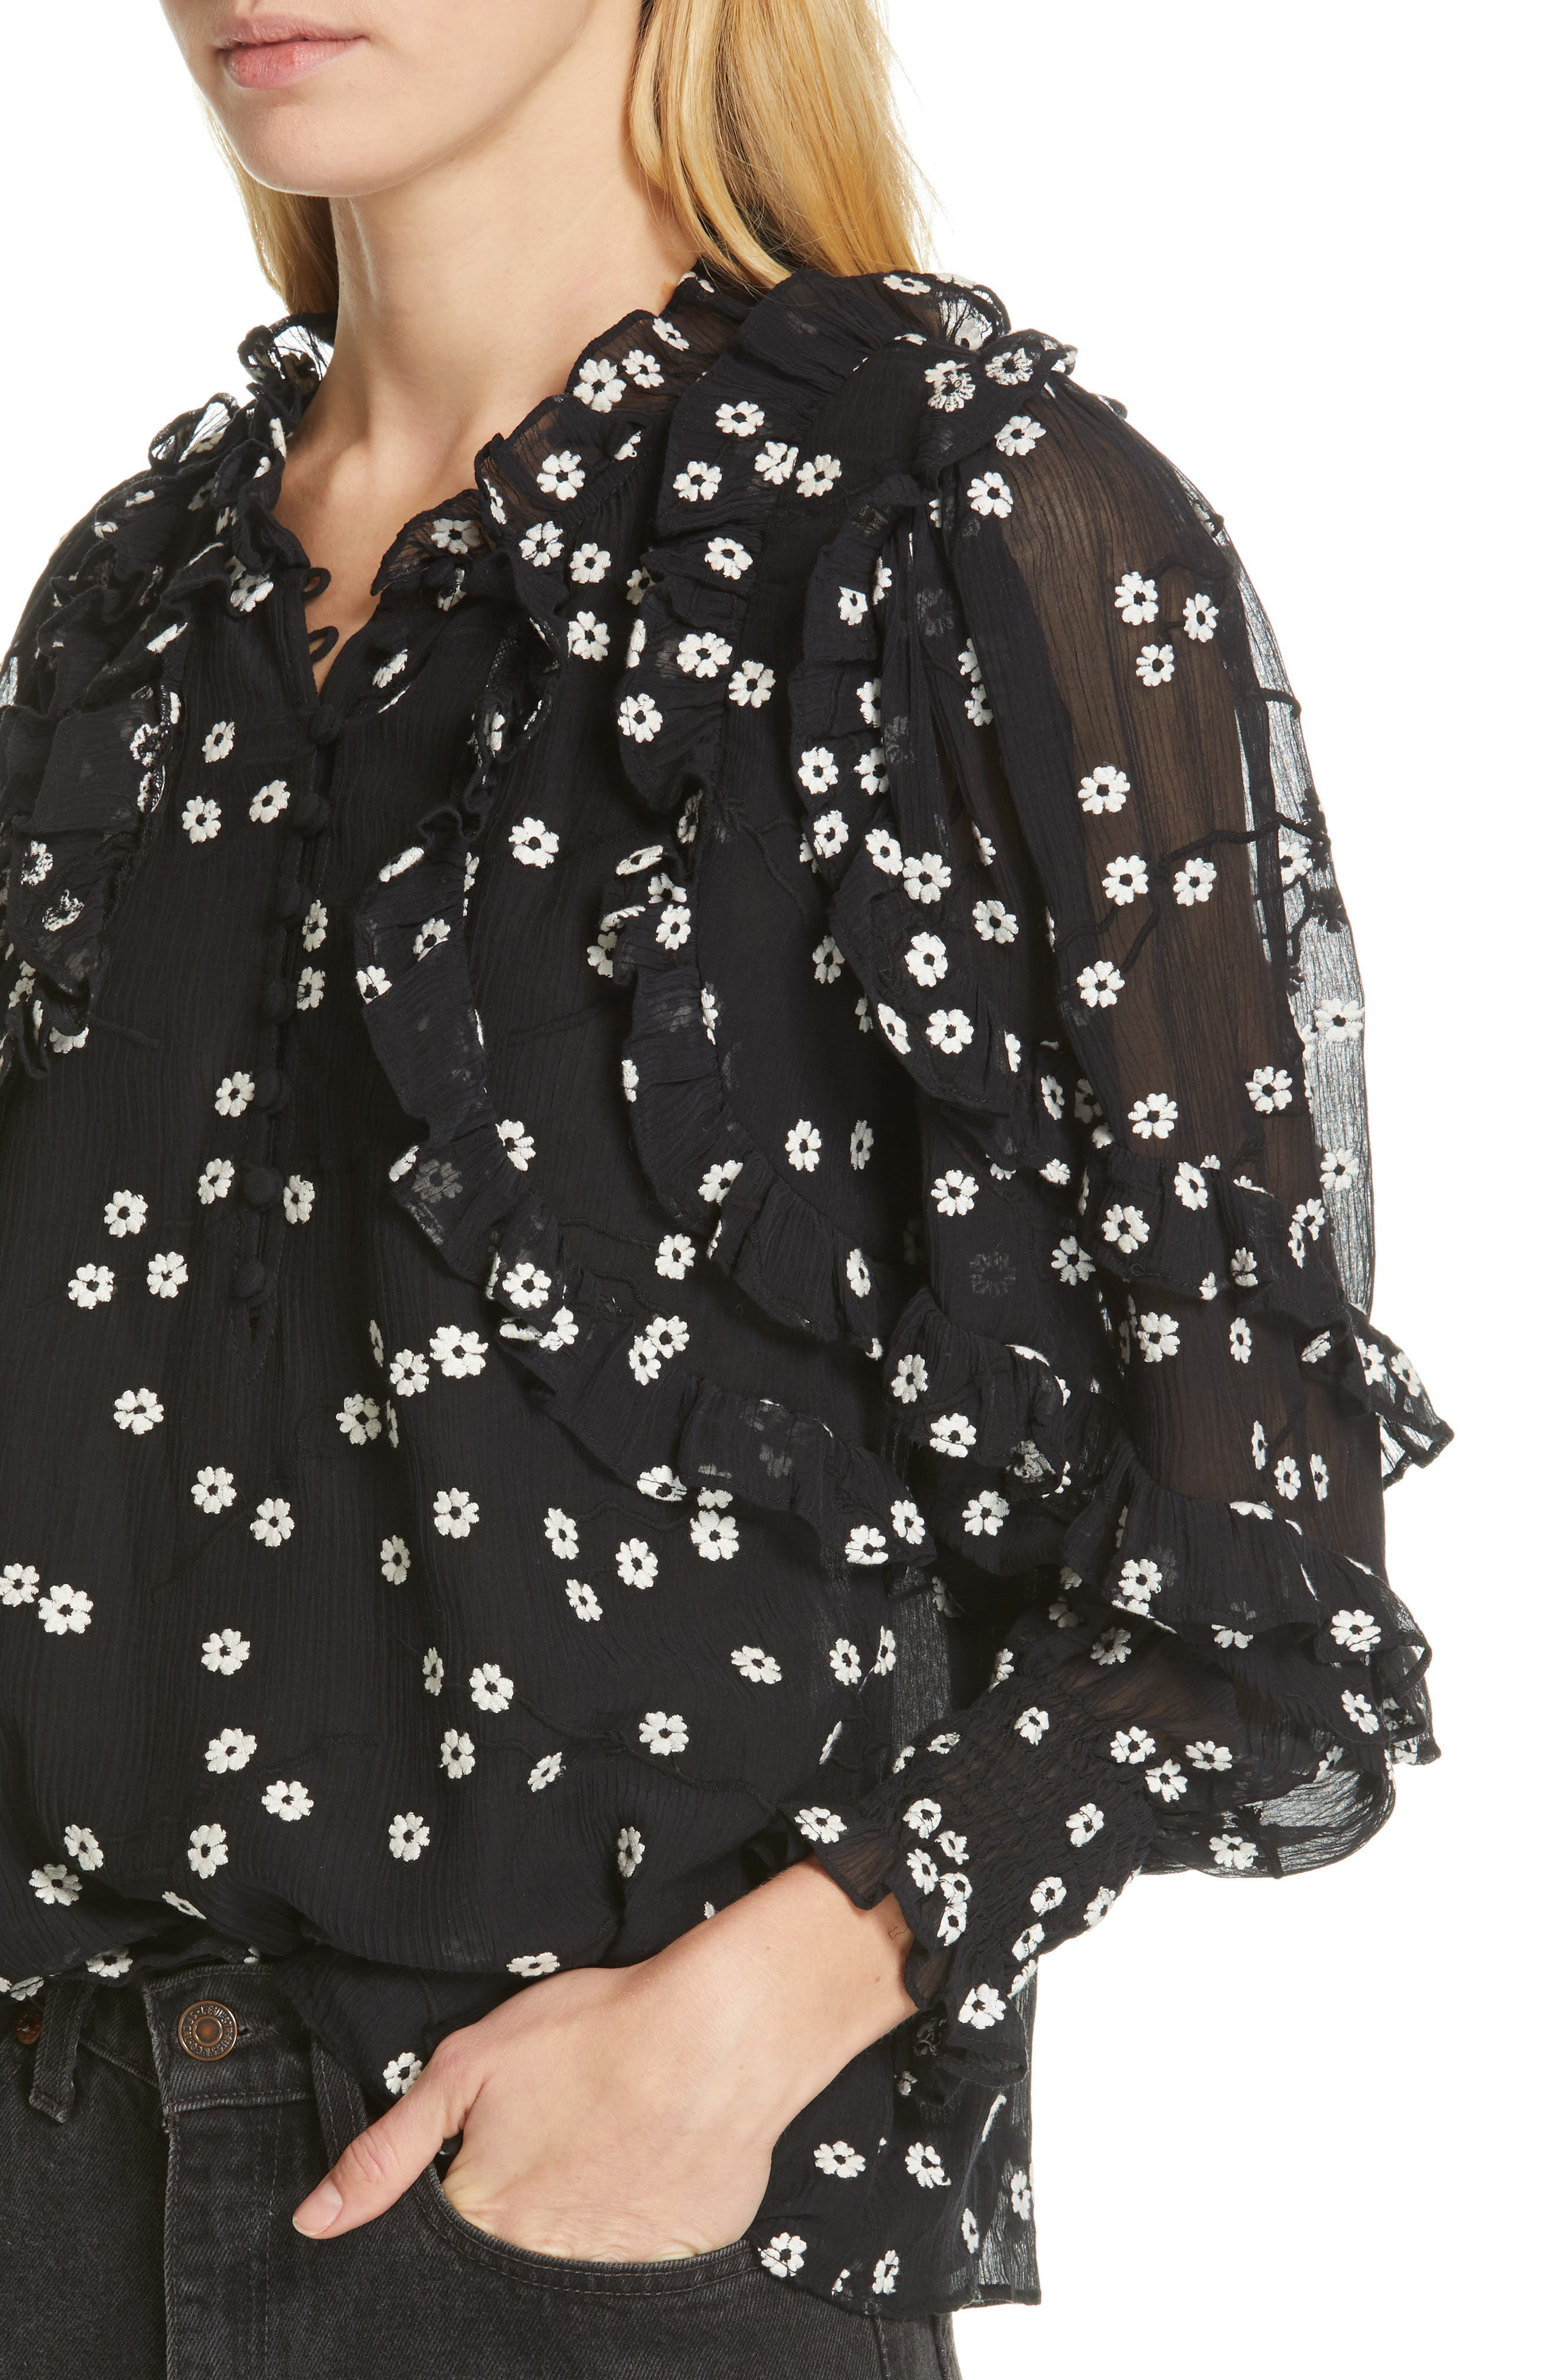 REBECCA TAYLOR, Alessandra Ruffle Top, Alternate thumbnail 4, color, BLACK COMBO